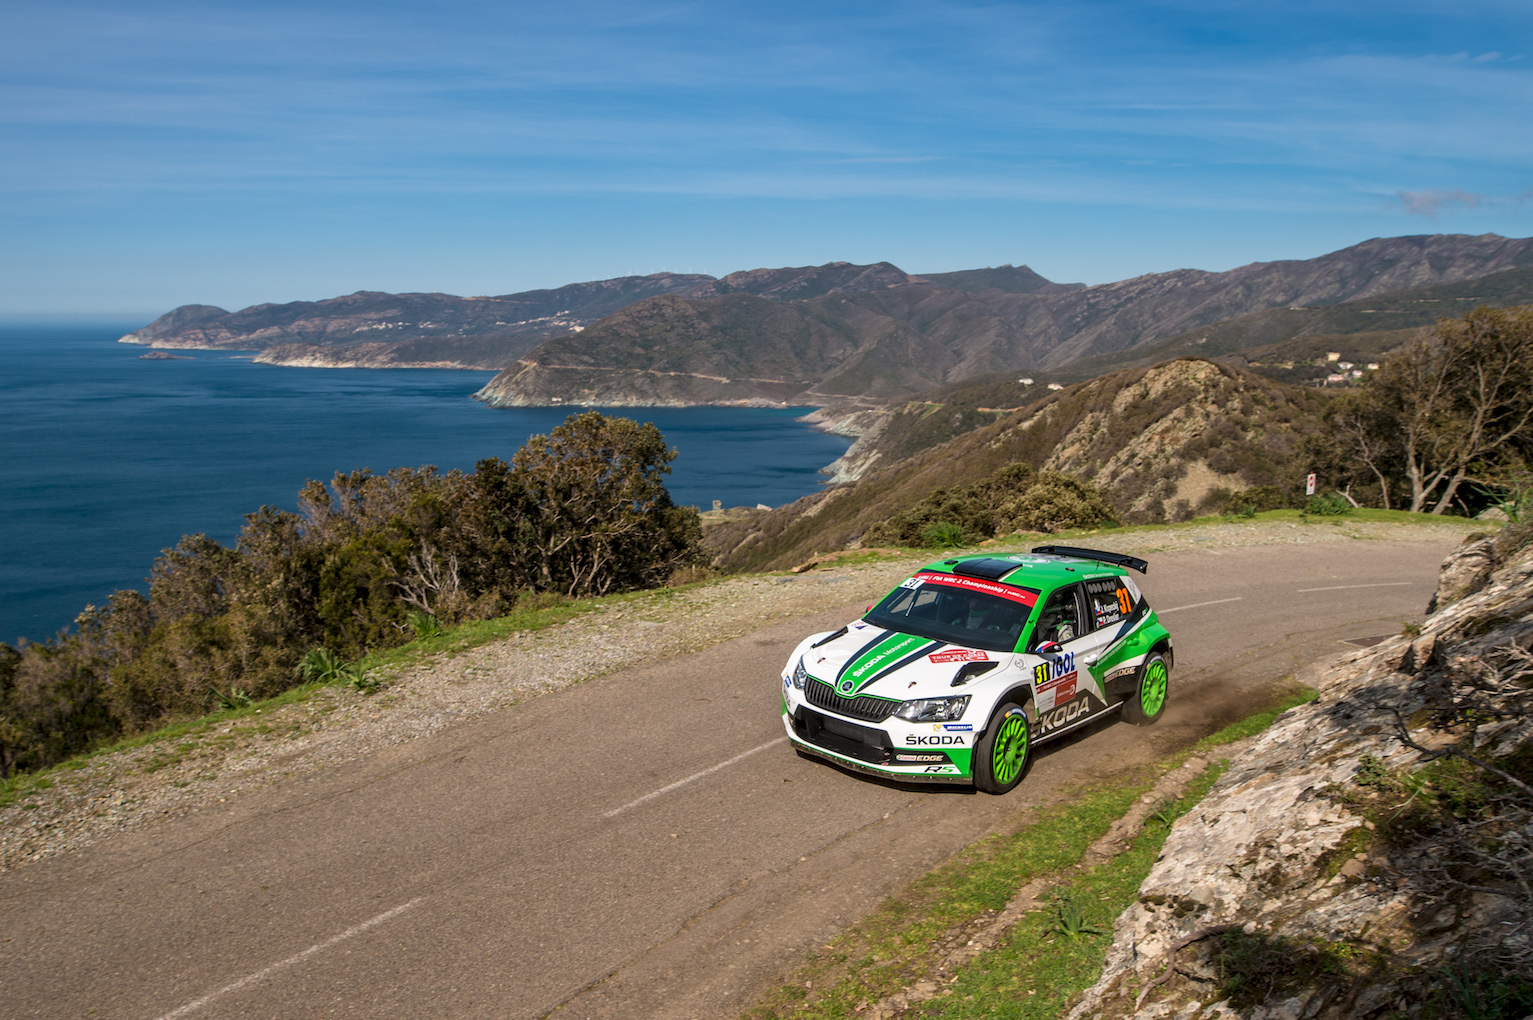 Let's Tear Up the Tarmac! Tour de Corse is About to Begin